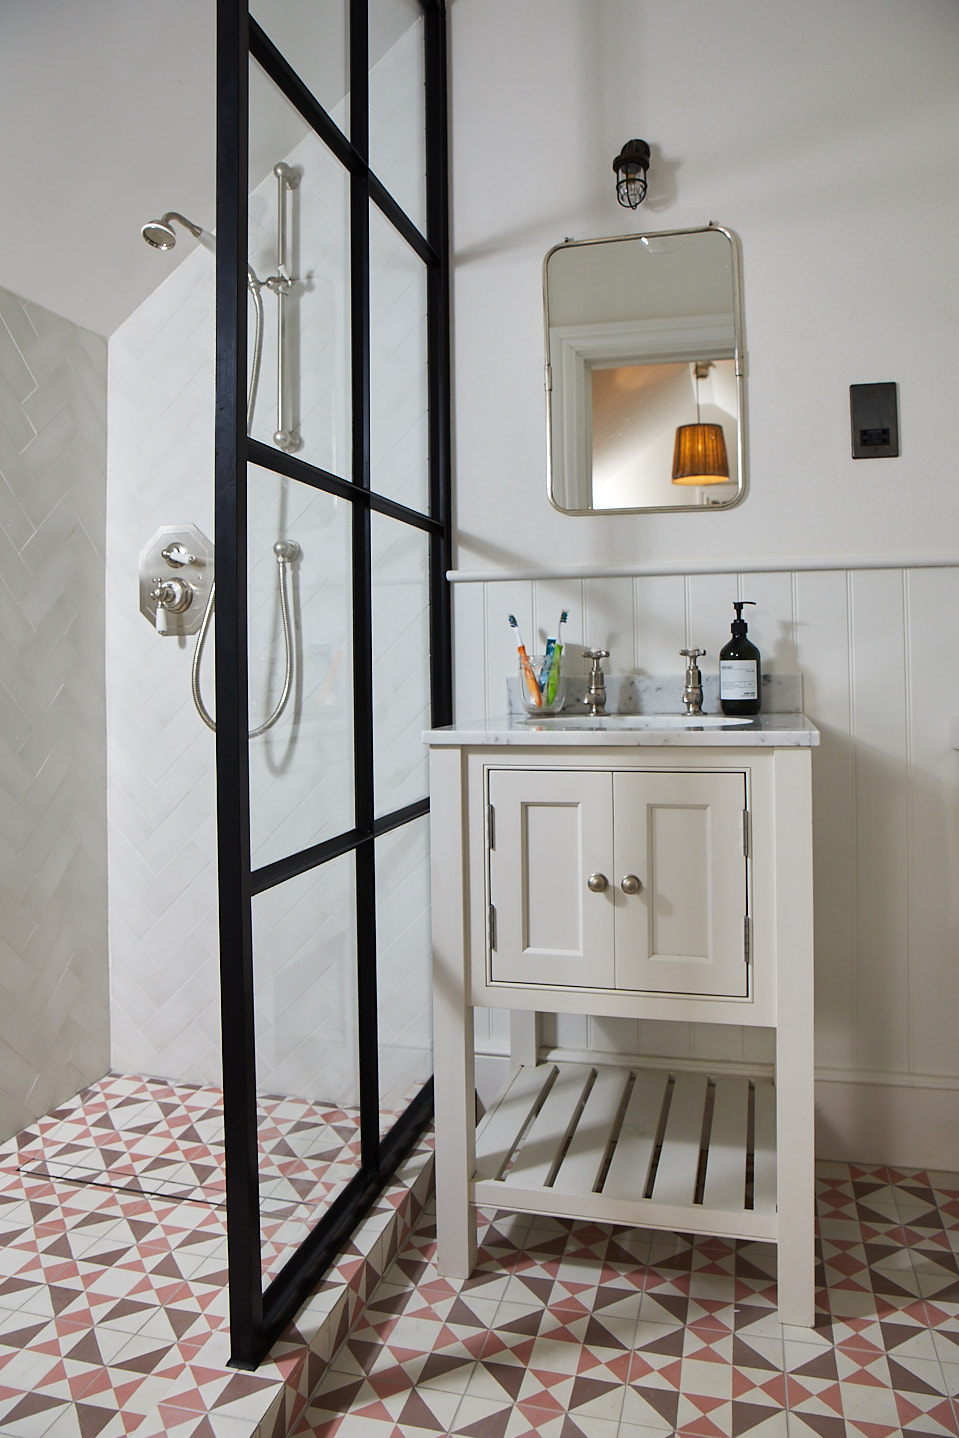 Painted vanity unit next to crittall shower screen